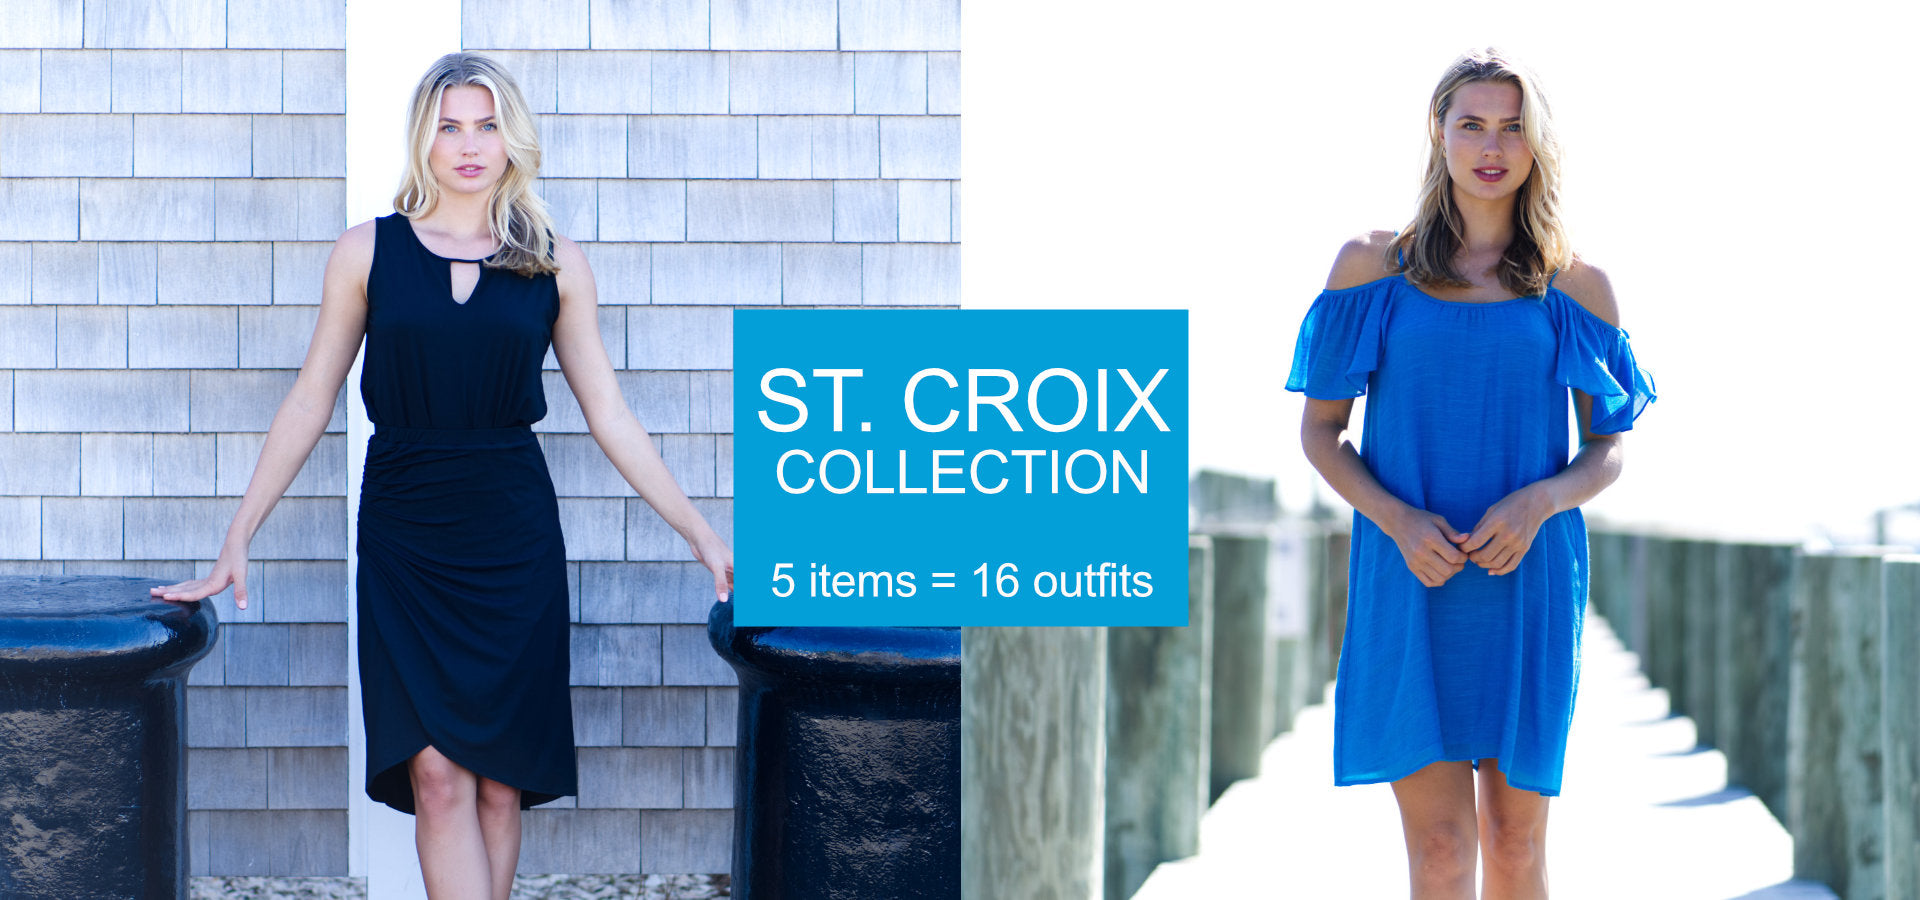 St. Croix Collection